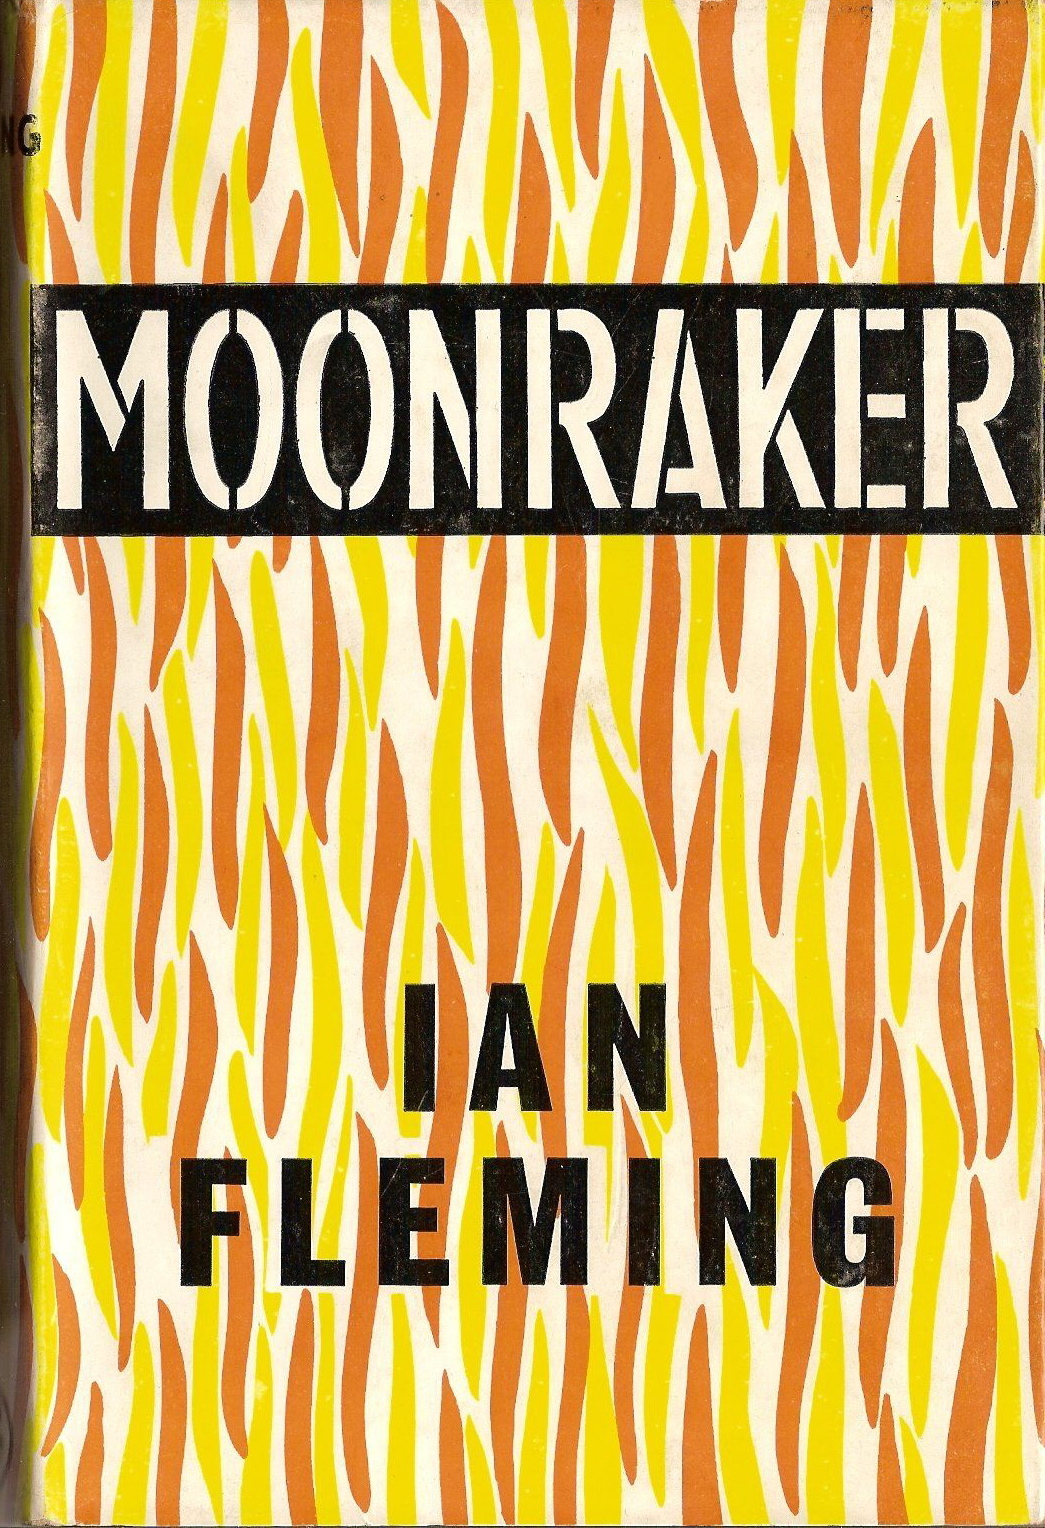 Moonraker by Ian Fleming. First Edition 1963  via.  Jacket designed by the author and executed by Kenneth Lewis.